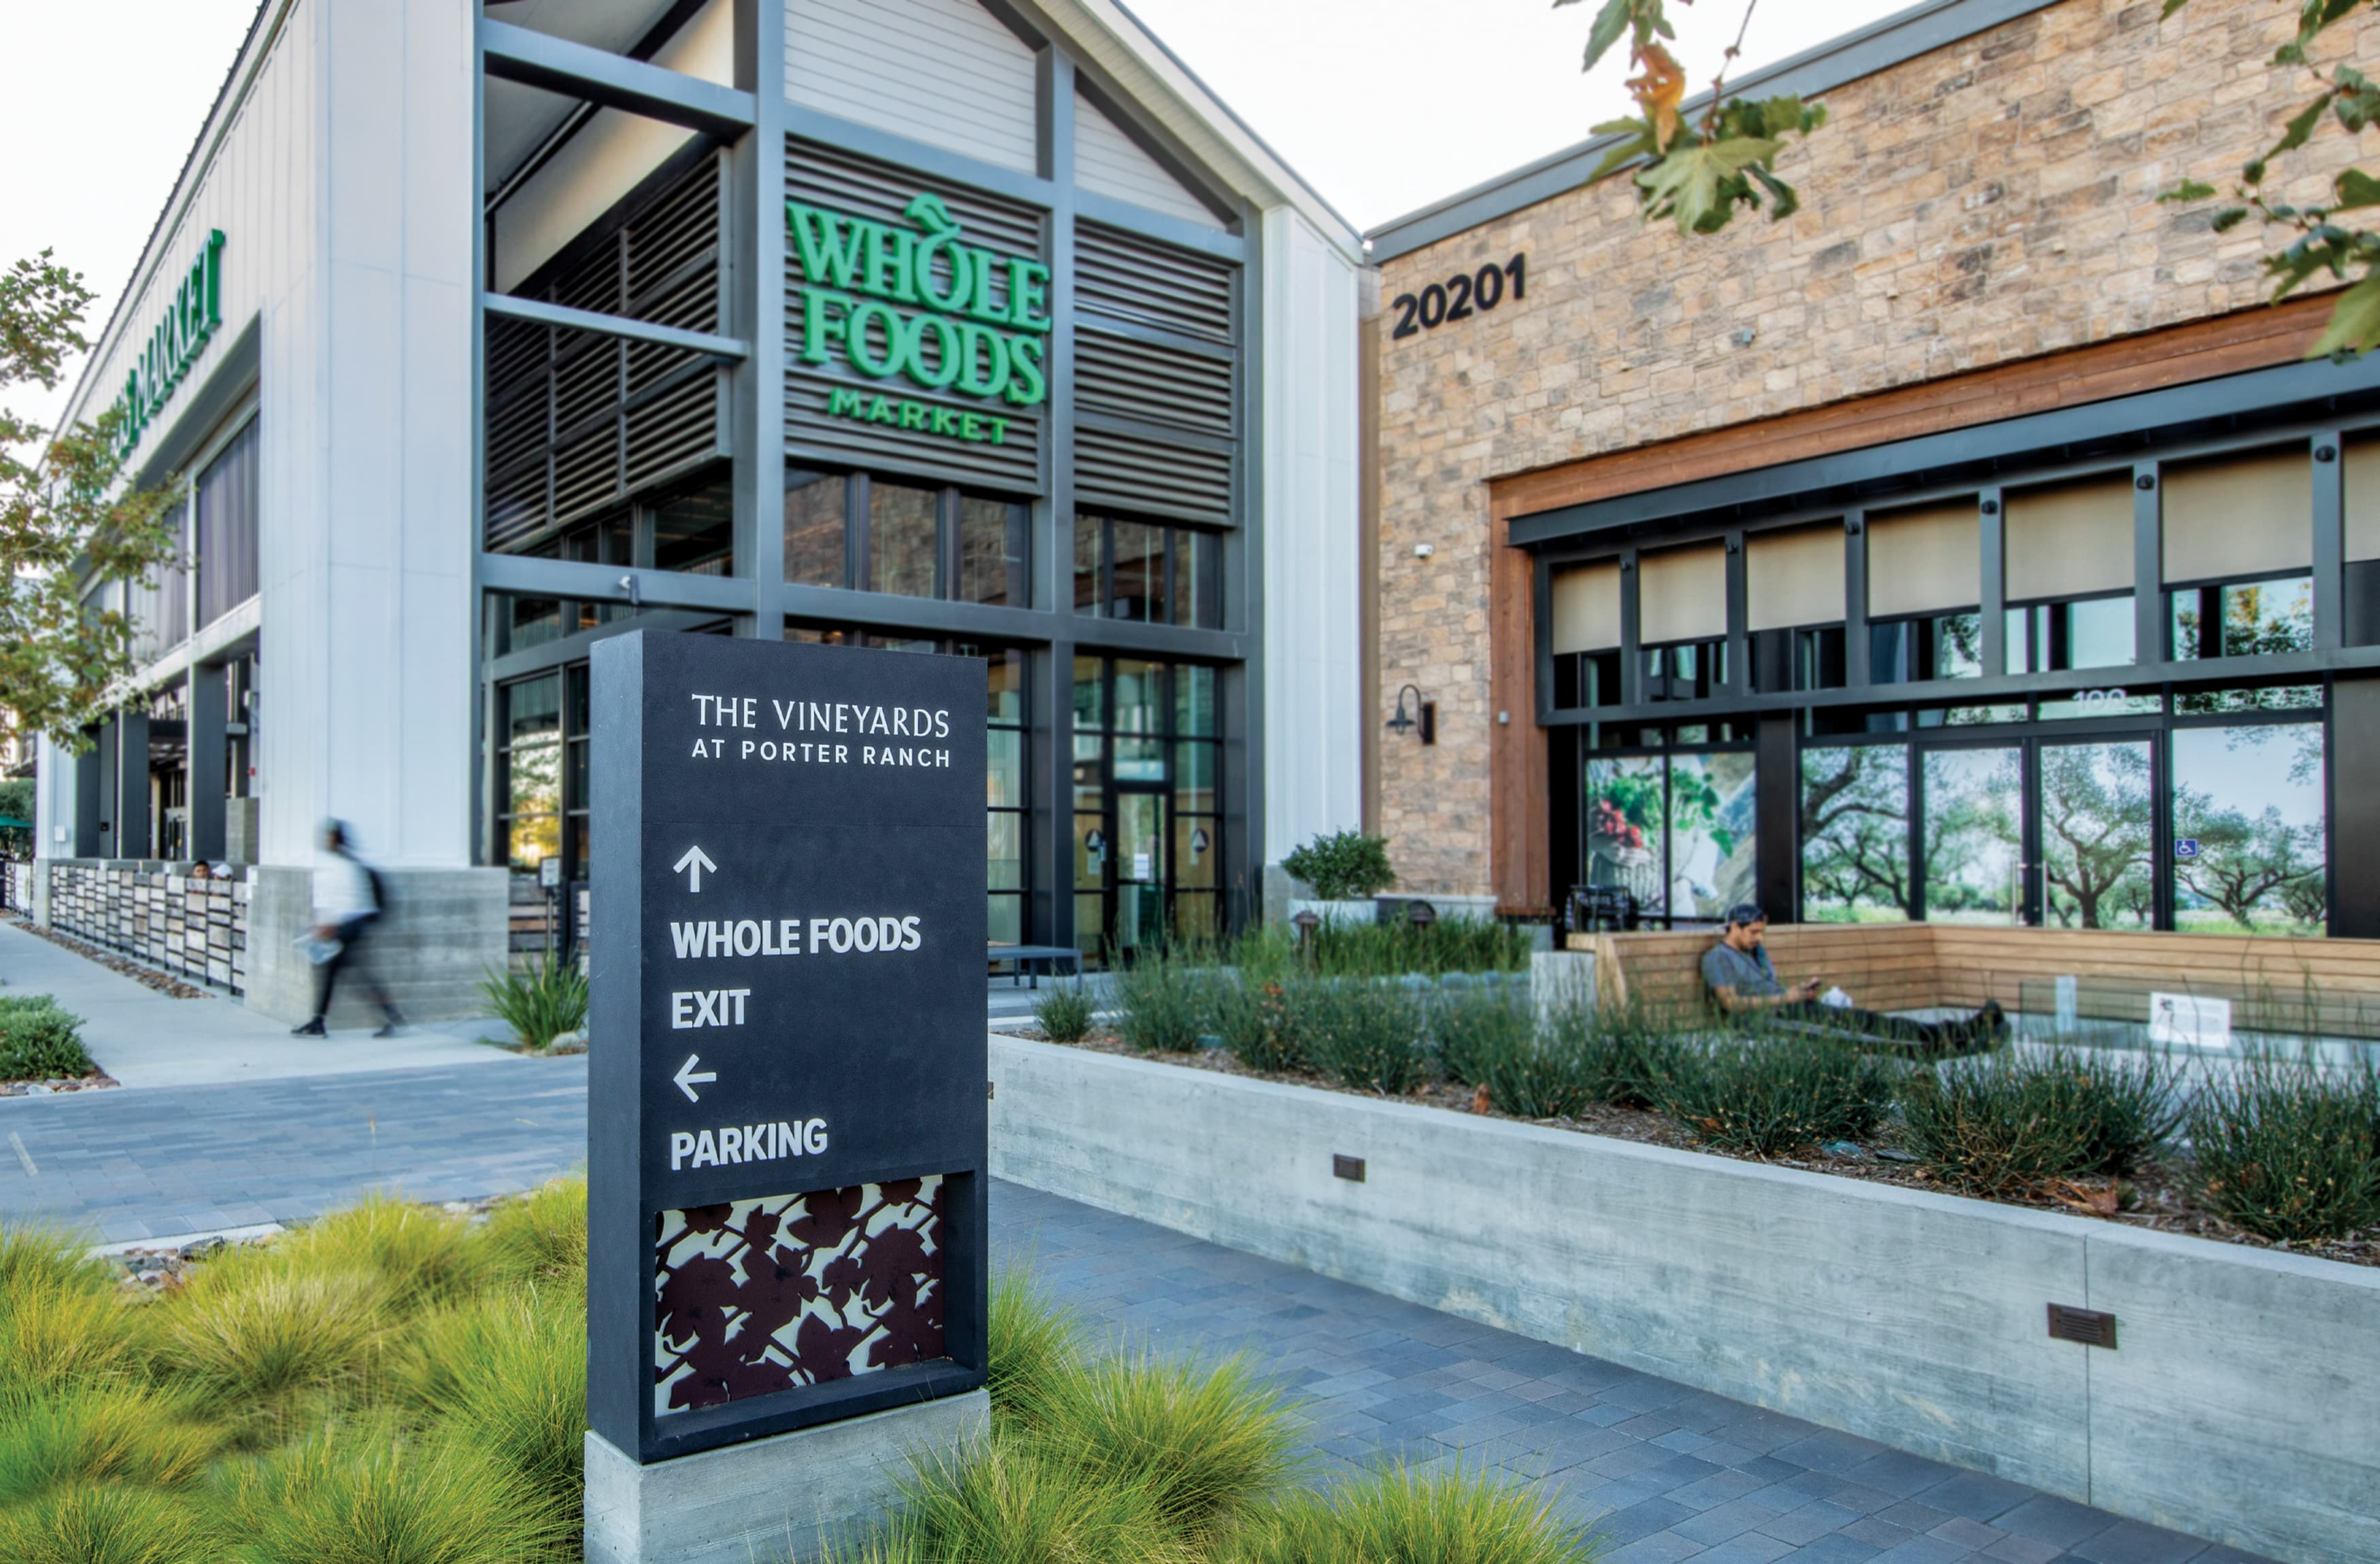 The Vineyard at Porter Ranch. Retail project vehicular directional wayfinding design.